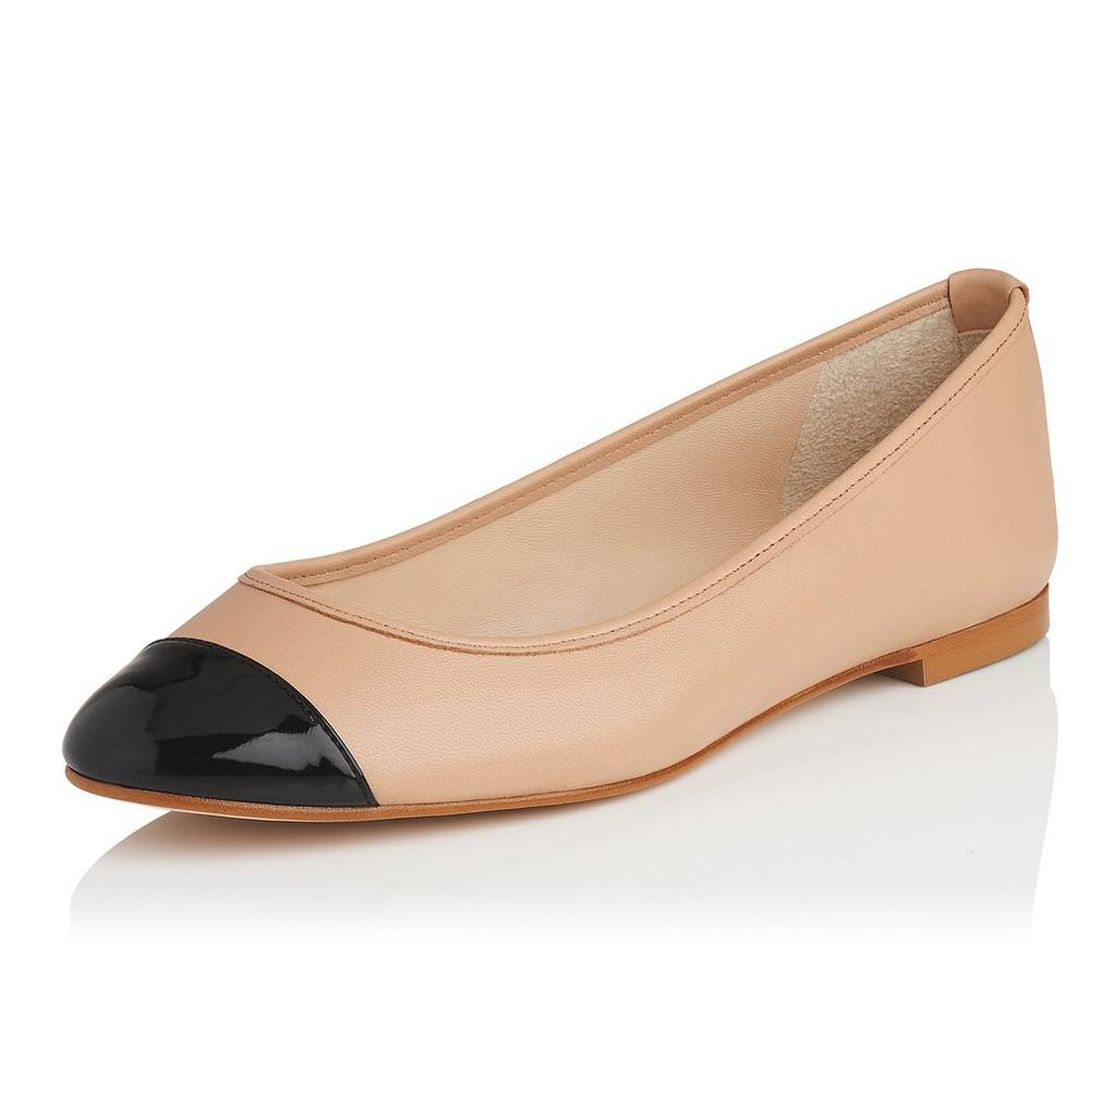 Leather upper round toe women casual flat shoes ladies daily dress shoes 475168881ac3